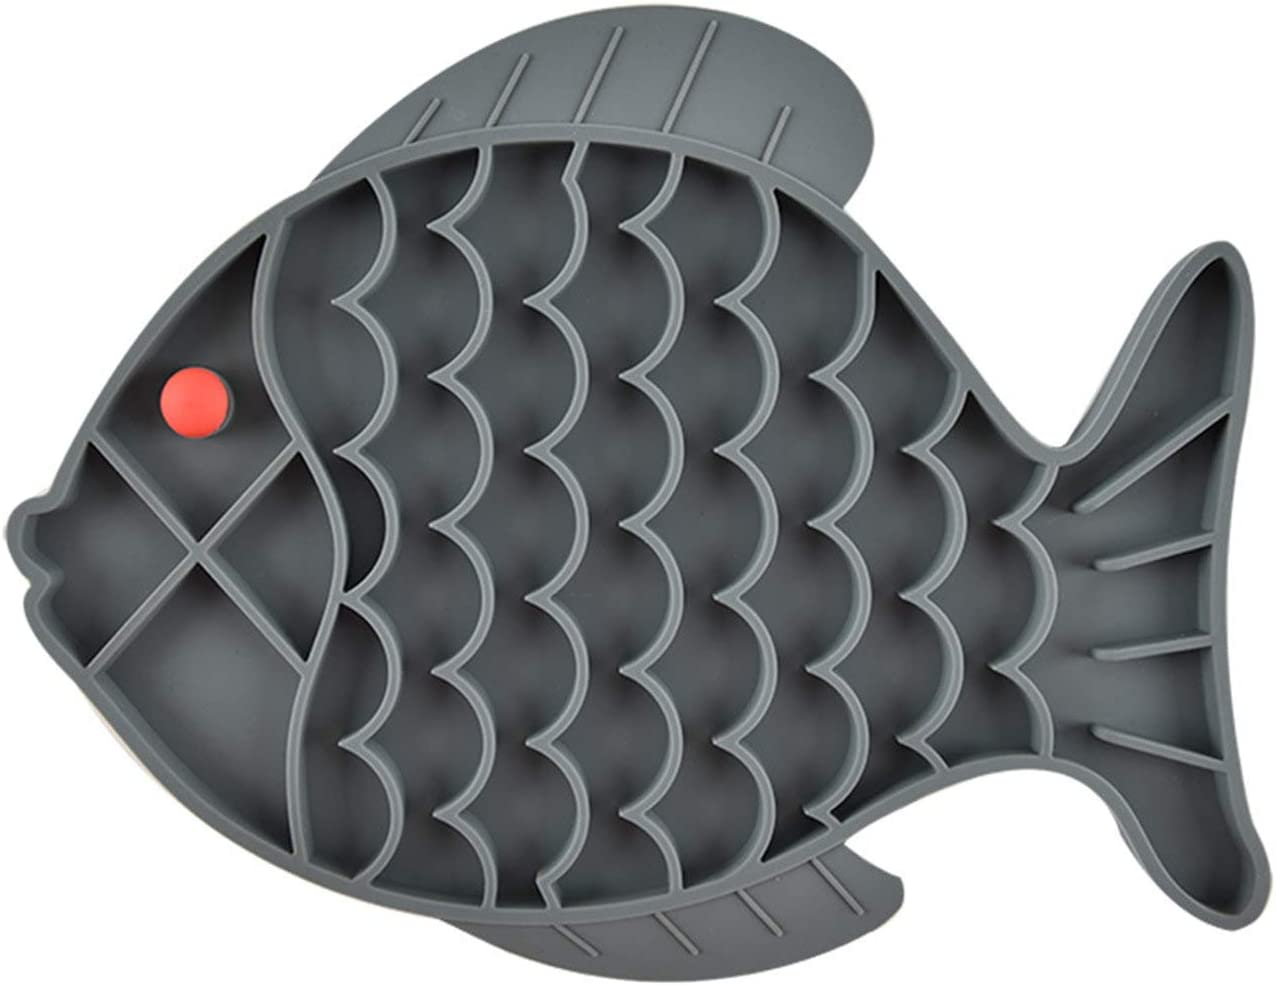 Fish-Shaped Cat Slow Feeder Pet Lick Mat Cat Puzzle Feeder for Dogs & Cats, Fun Alternative to Slow Feeder Cat Bowl, IQ Treat Mat, Anxiety Relief